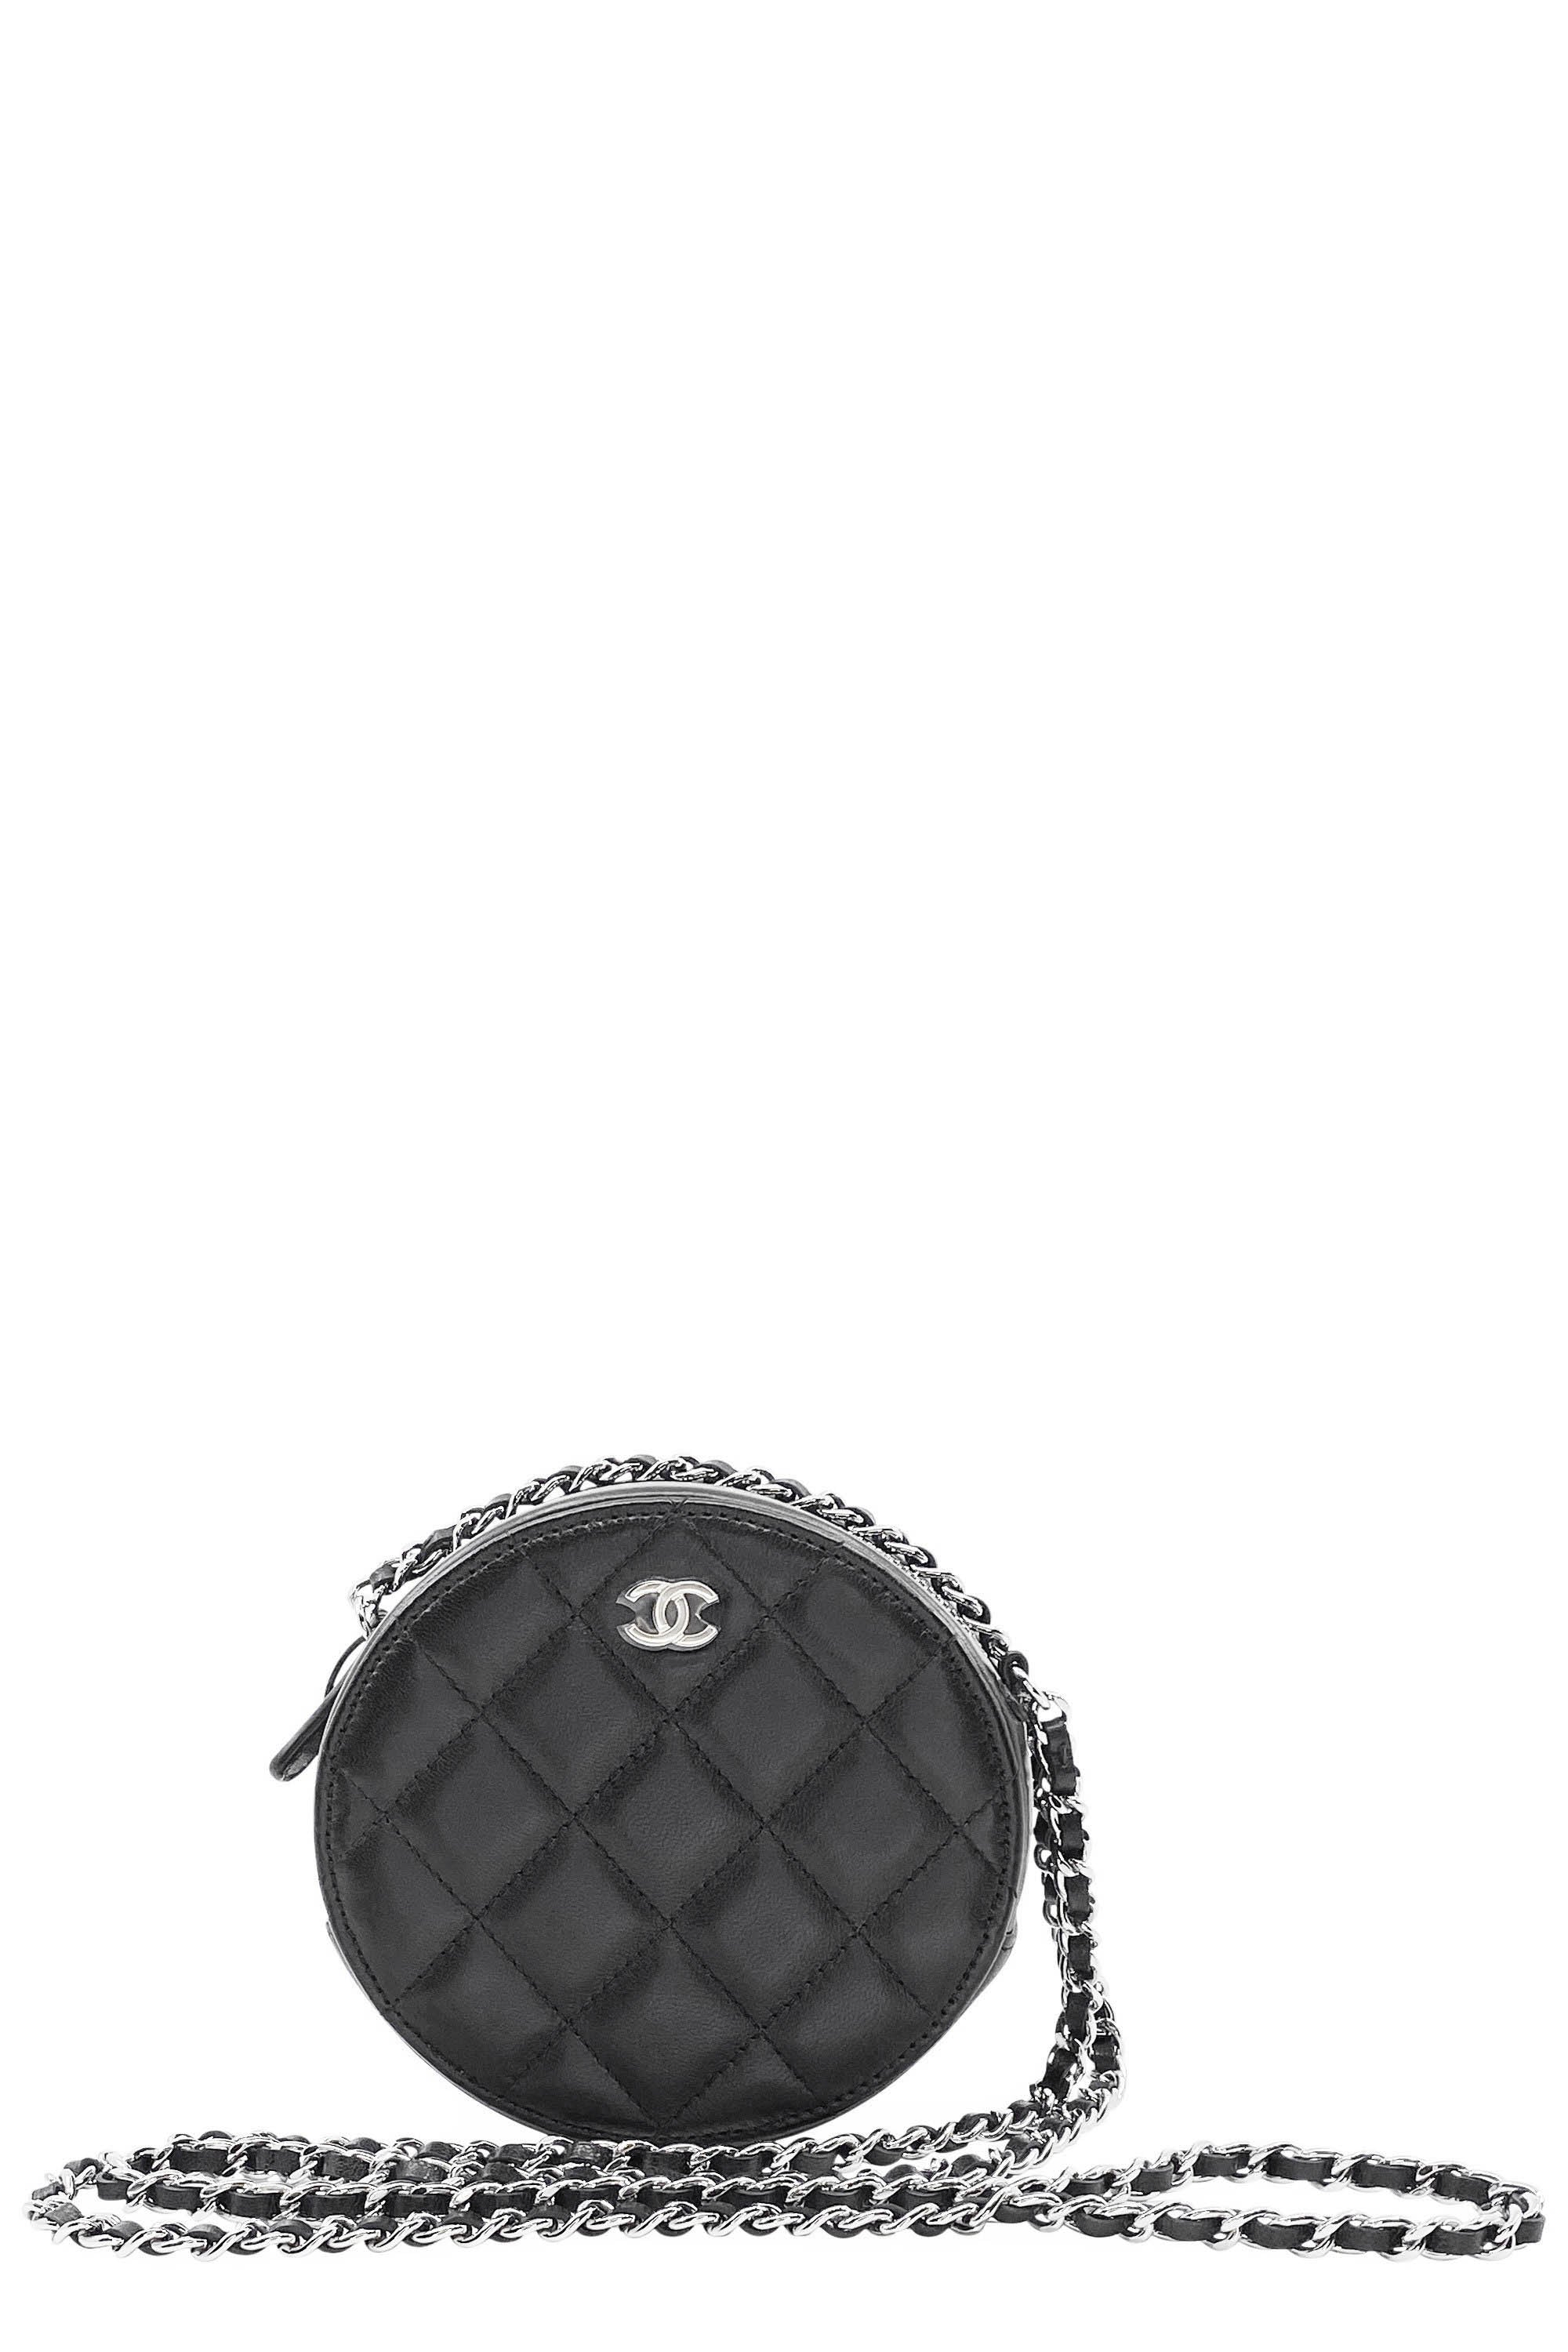 CHANEL Round Crossbody Bag Black Frontansicht